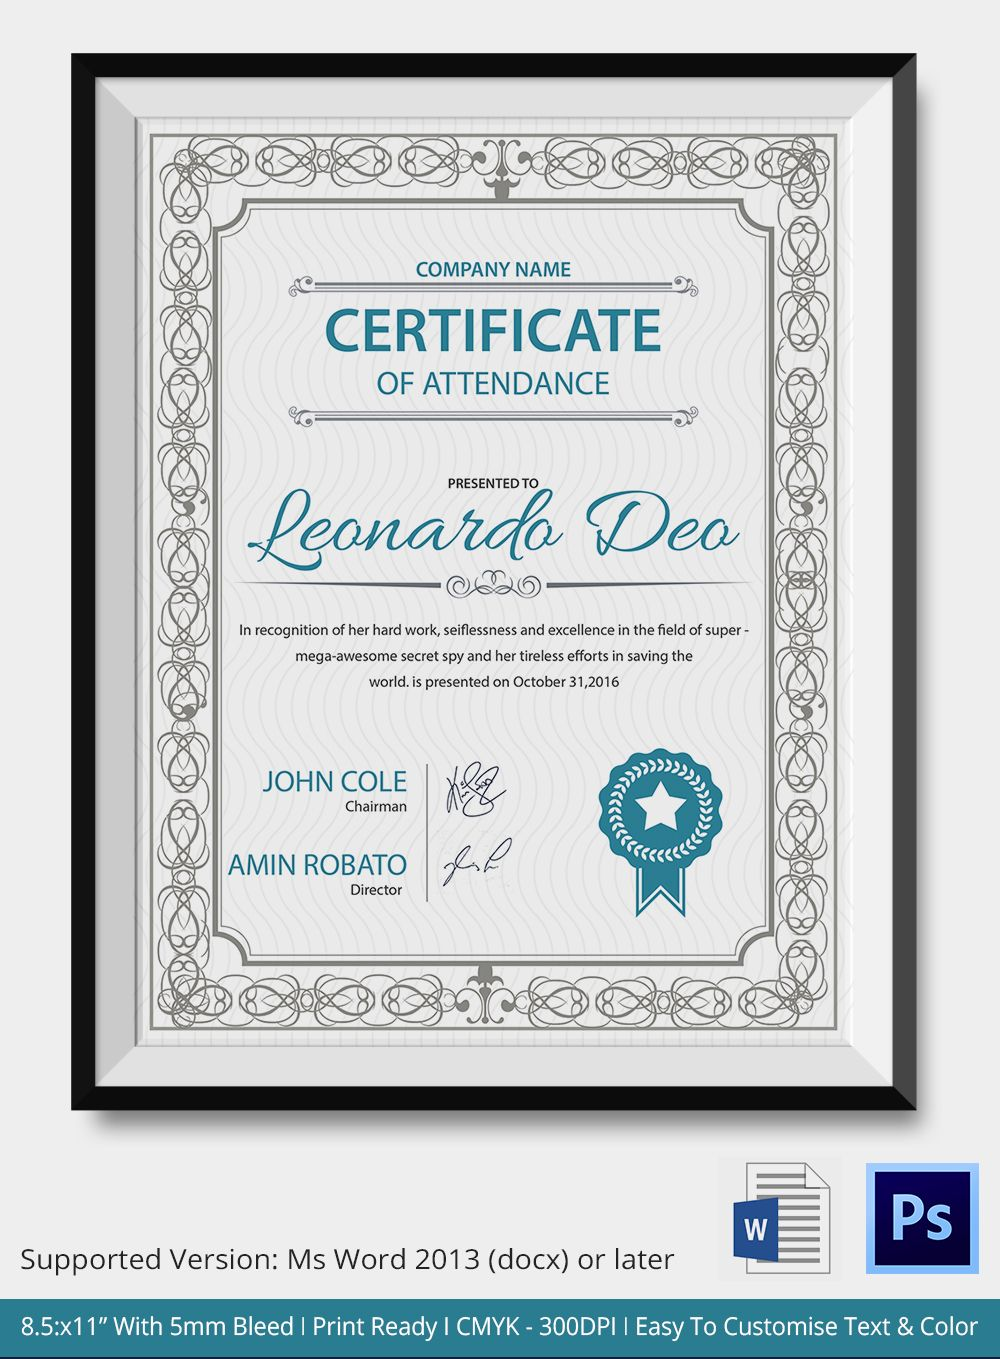 Professional editable certificate of attendance template sample professional editable certificate of attendance template sample for company with blue and gray color scheme 1betcityfo Images